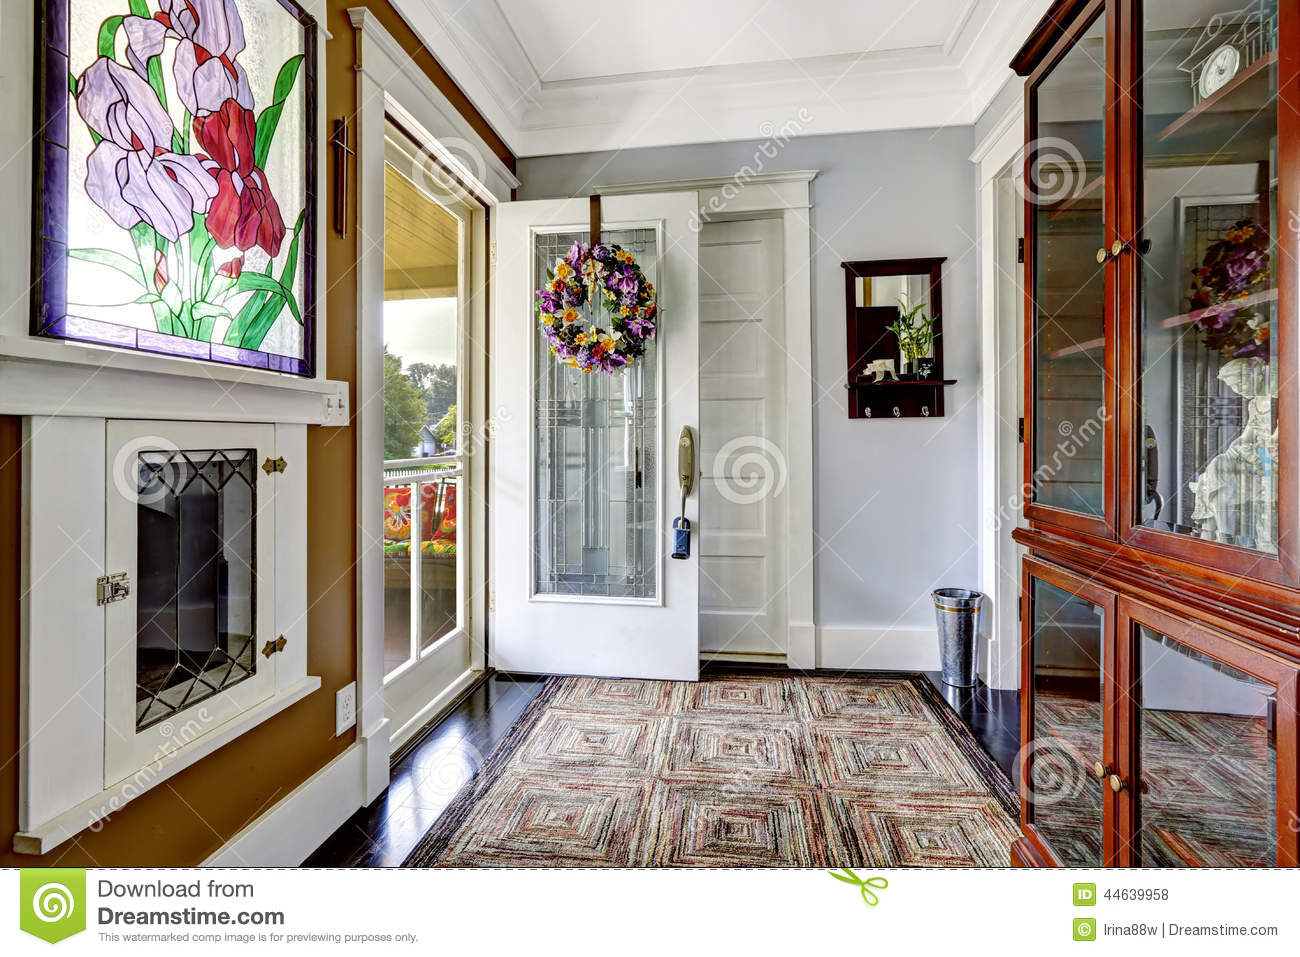 Int rieur de couloir d 39 entr e dans la vieille maison am ricaine photo stock image 44639958 for Interieur maison americaine